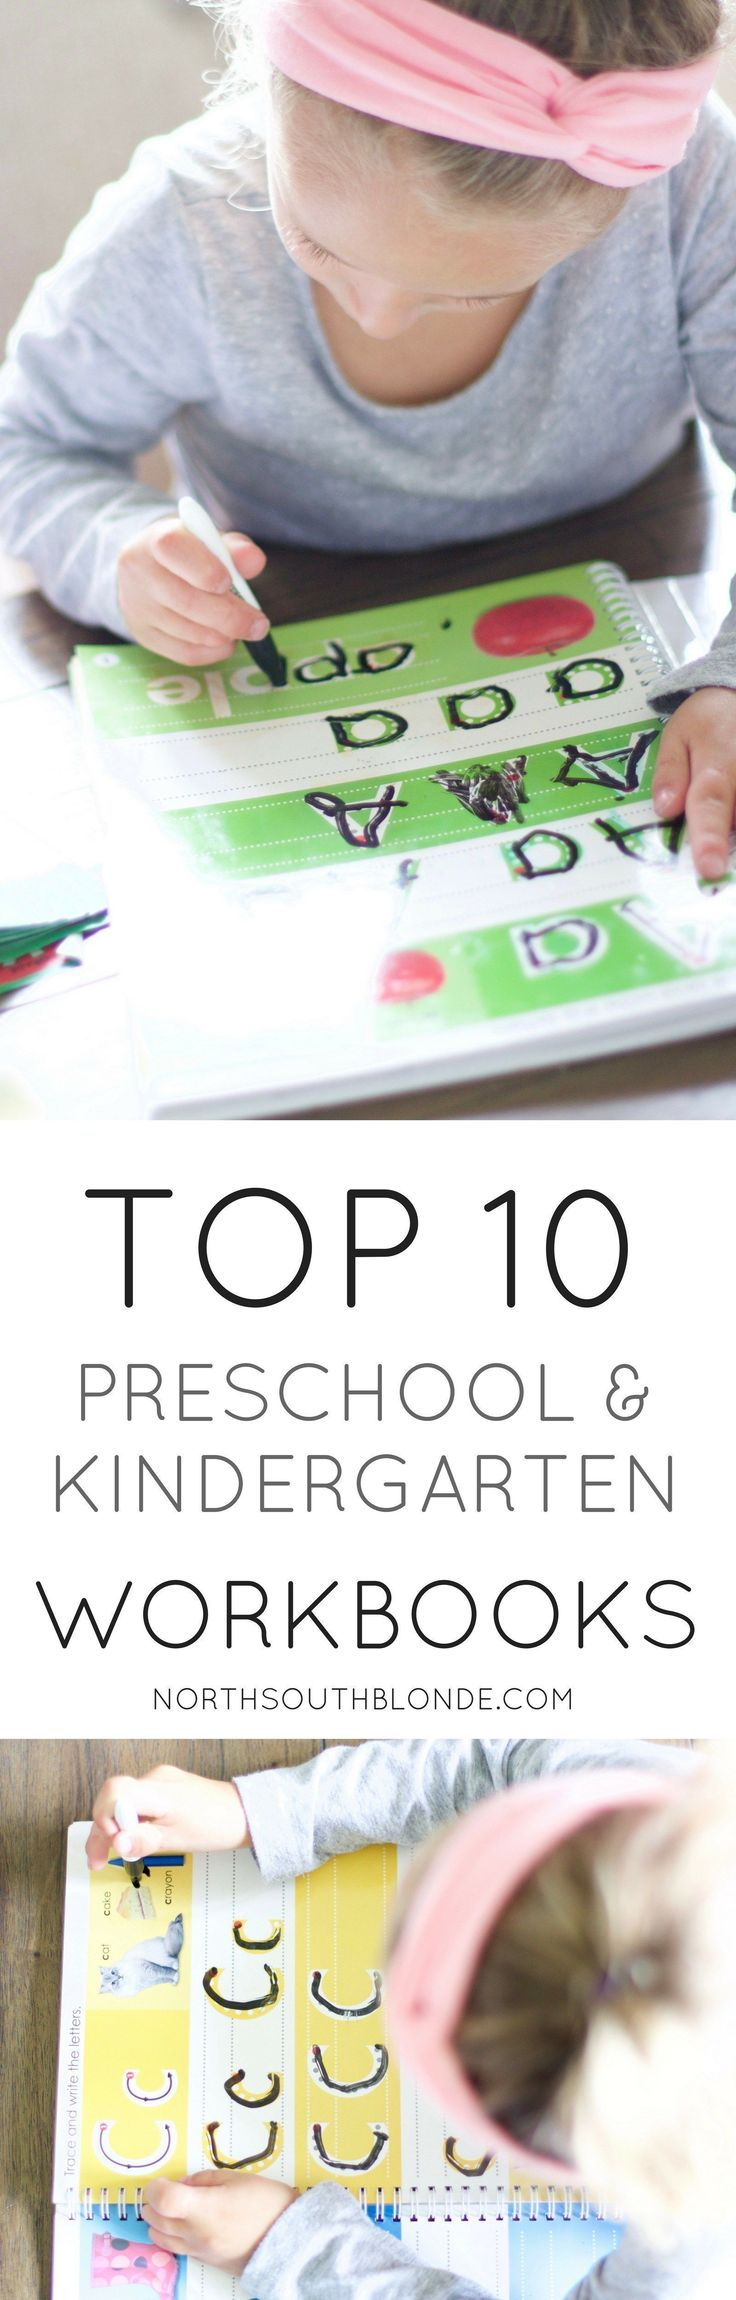 The best activity workbooks that actually make learning fun and enjoyable for for your child, while giving them the head start that they need. Children Education   Homeschool   Homeschooling   Homework   Tutor   Early Learning   Toddler Activities   Activity Books   Preschool   Junior Kindergarten   Senior Kindergarten   Childhood Education   Parenting Tips   Parenthood   Motherhood   JK   SK   Pre-k   Literacy #ParentingTipsNeeded